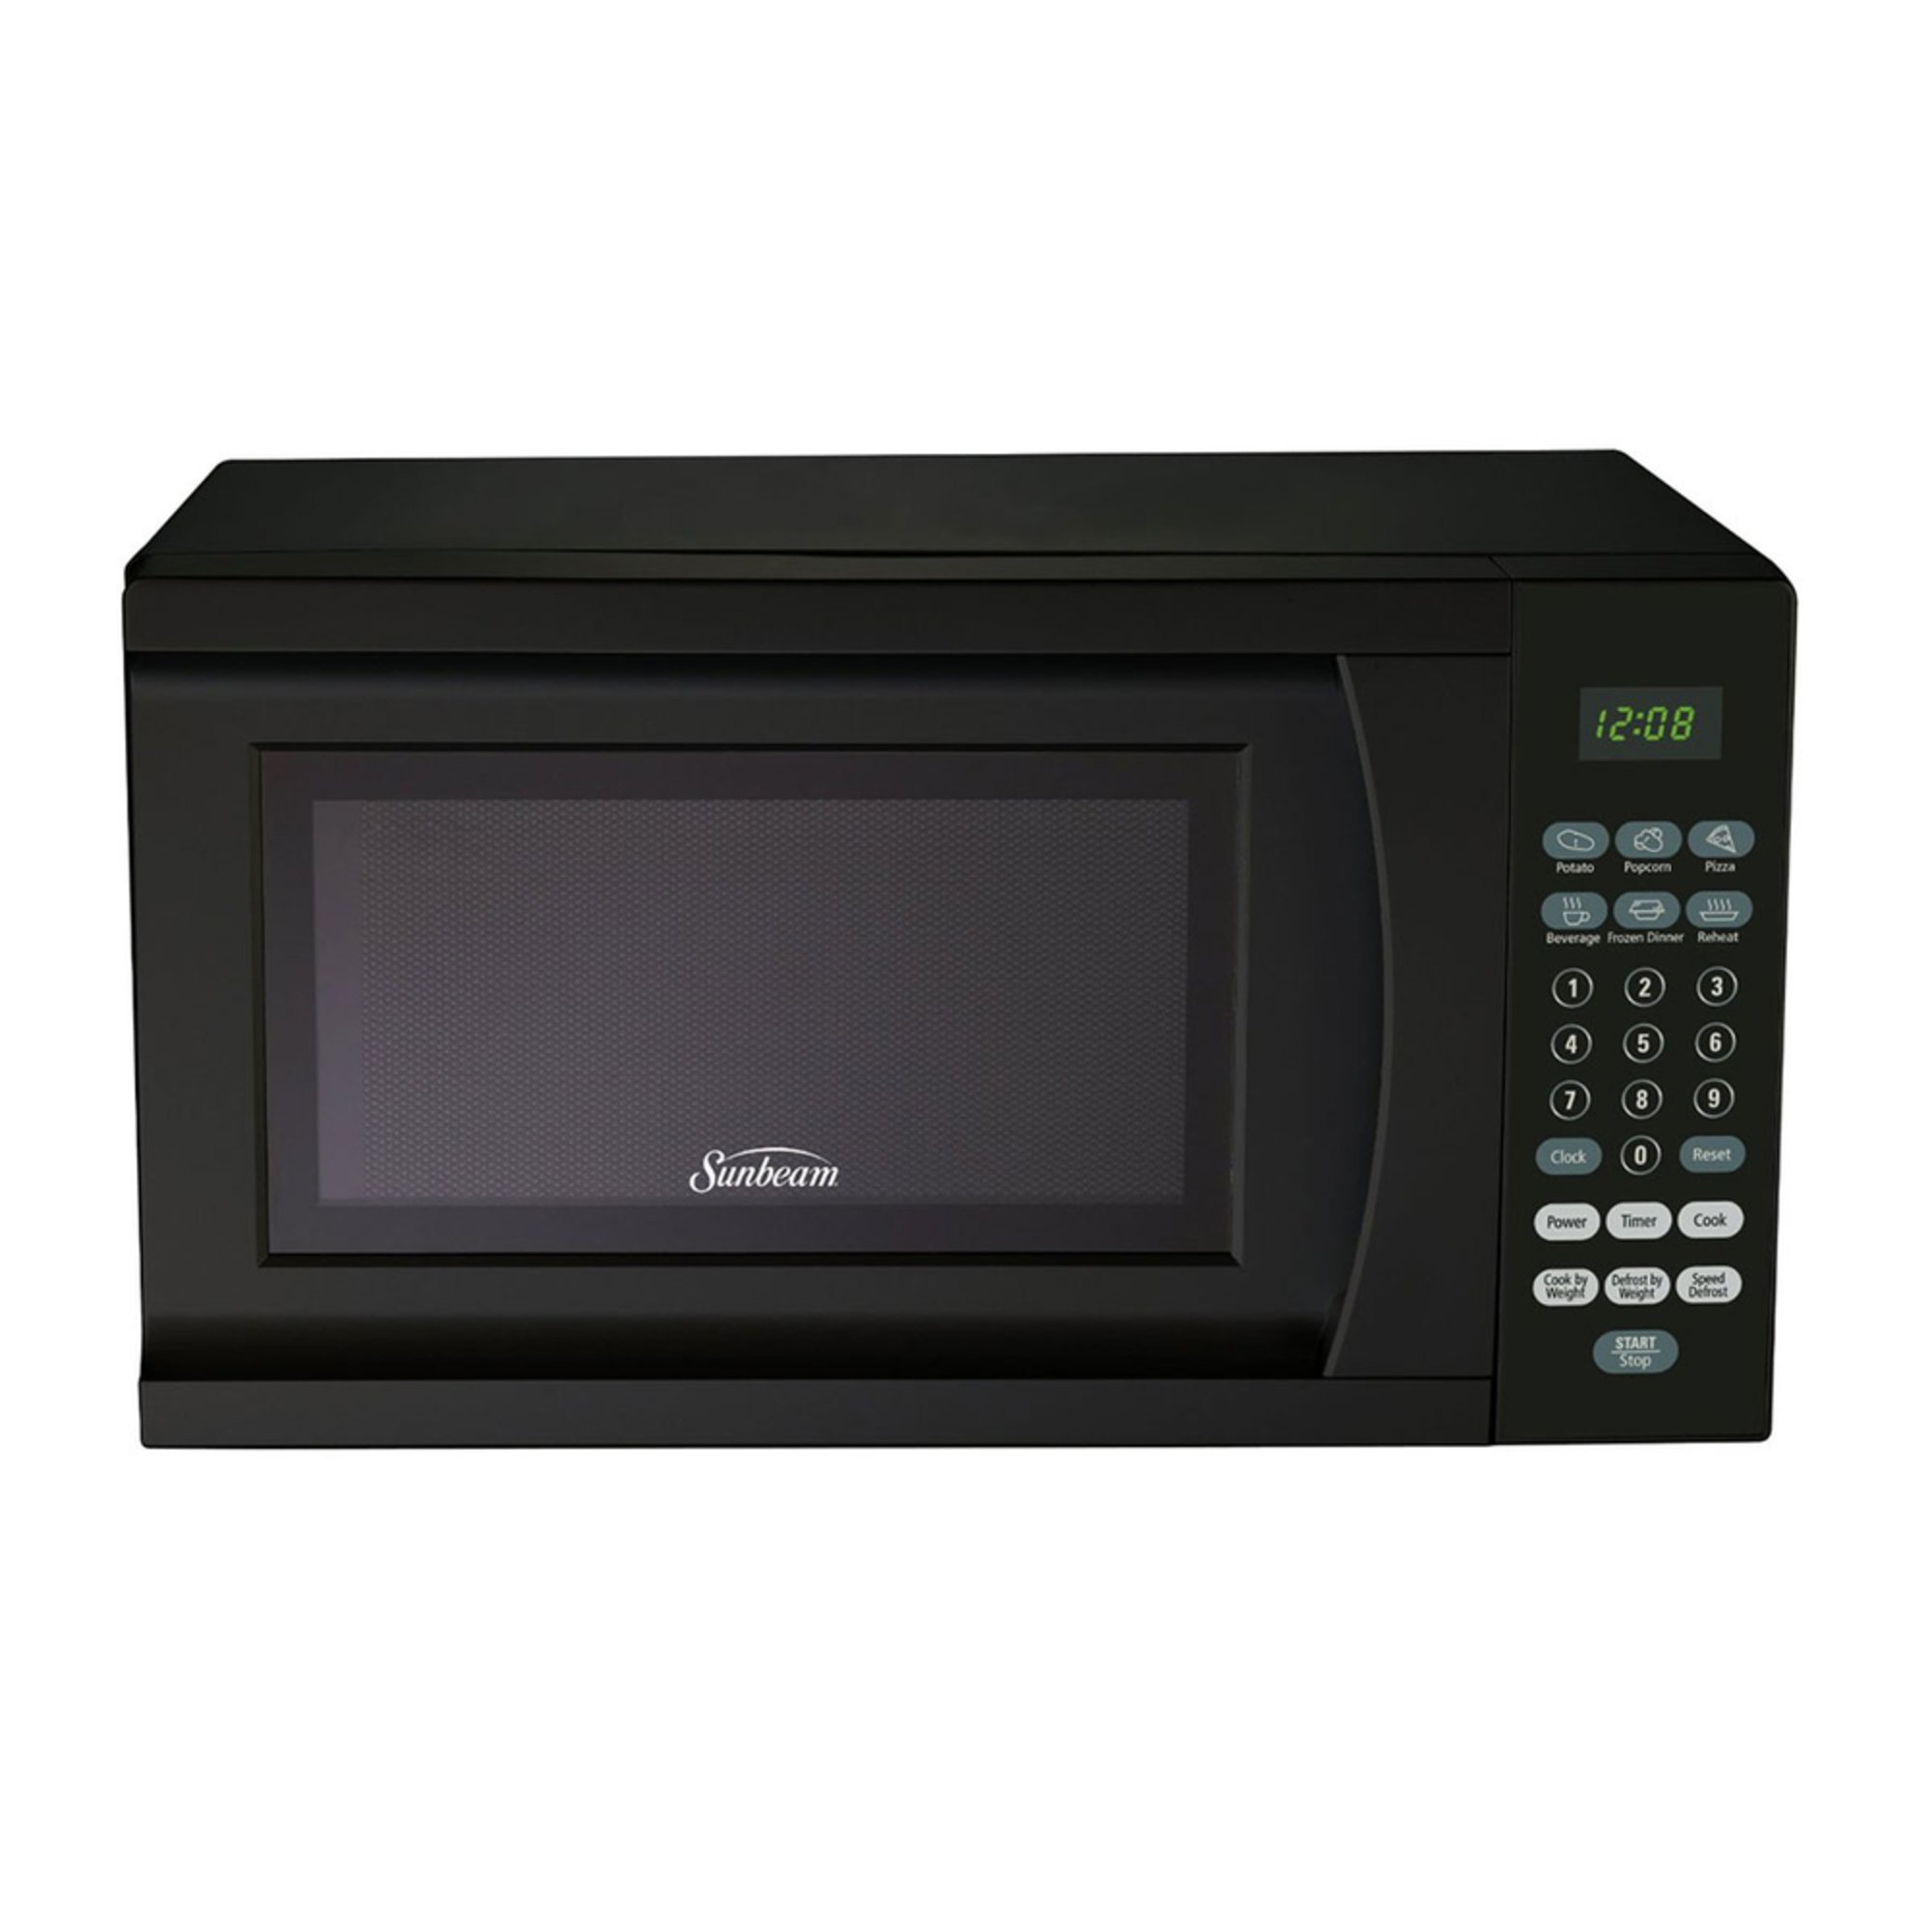 Sunbeam 7 Cu Ft 700 Watt Microwave Oven Black Sgs90701b Countertop Microwaves For The Home Your Navy Exchange Official Site